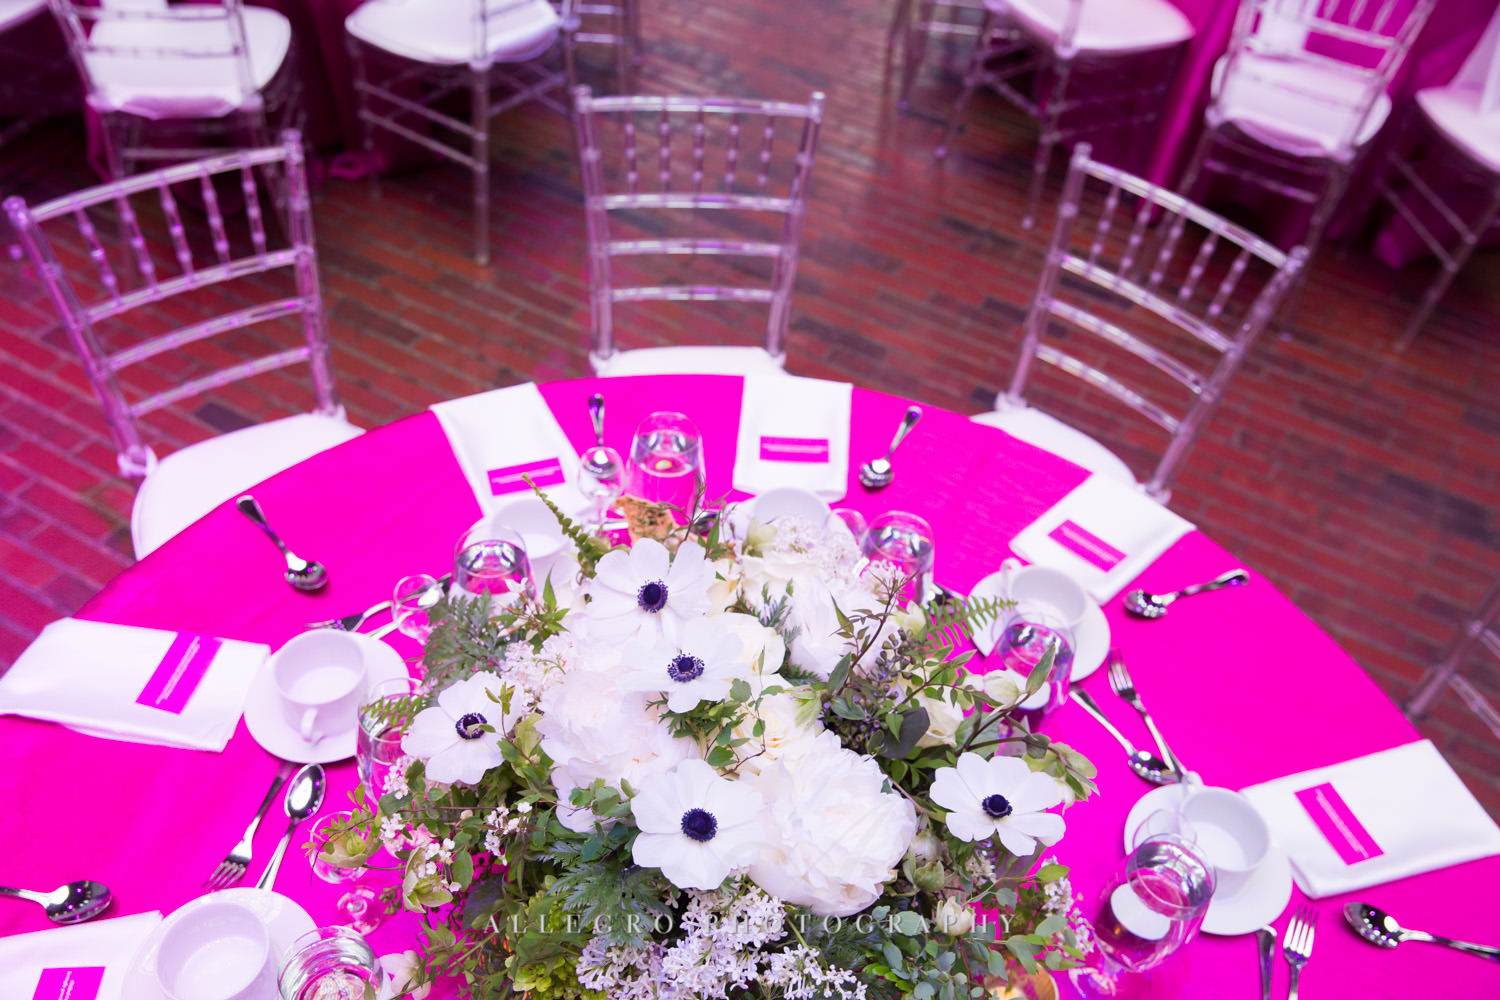 hot pink linens rosie's place gala boston non-profit event photography